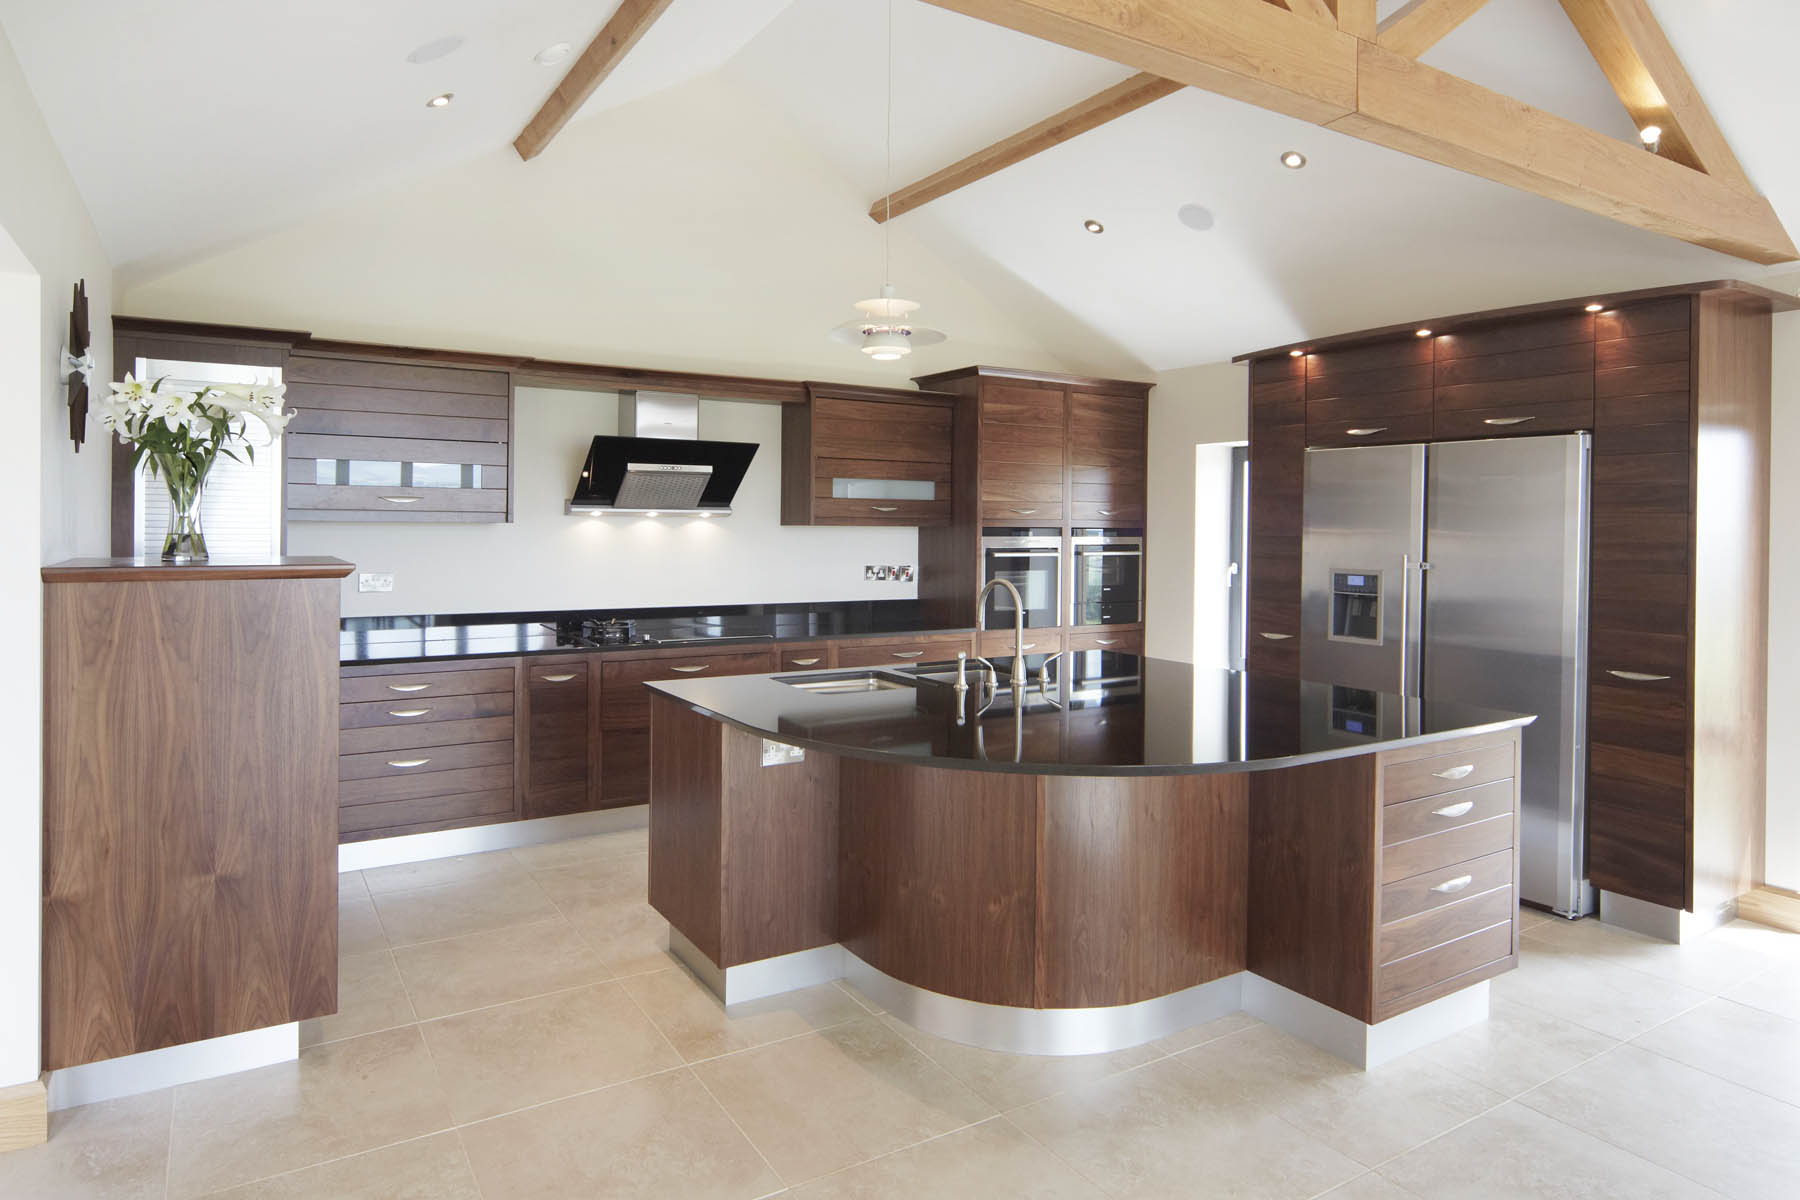 Kitchens california remodeling inc for Kitchen design ideas pictures